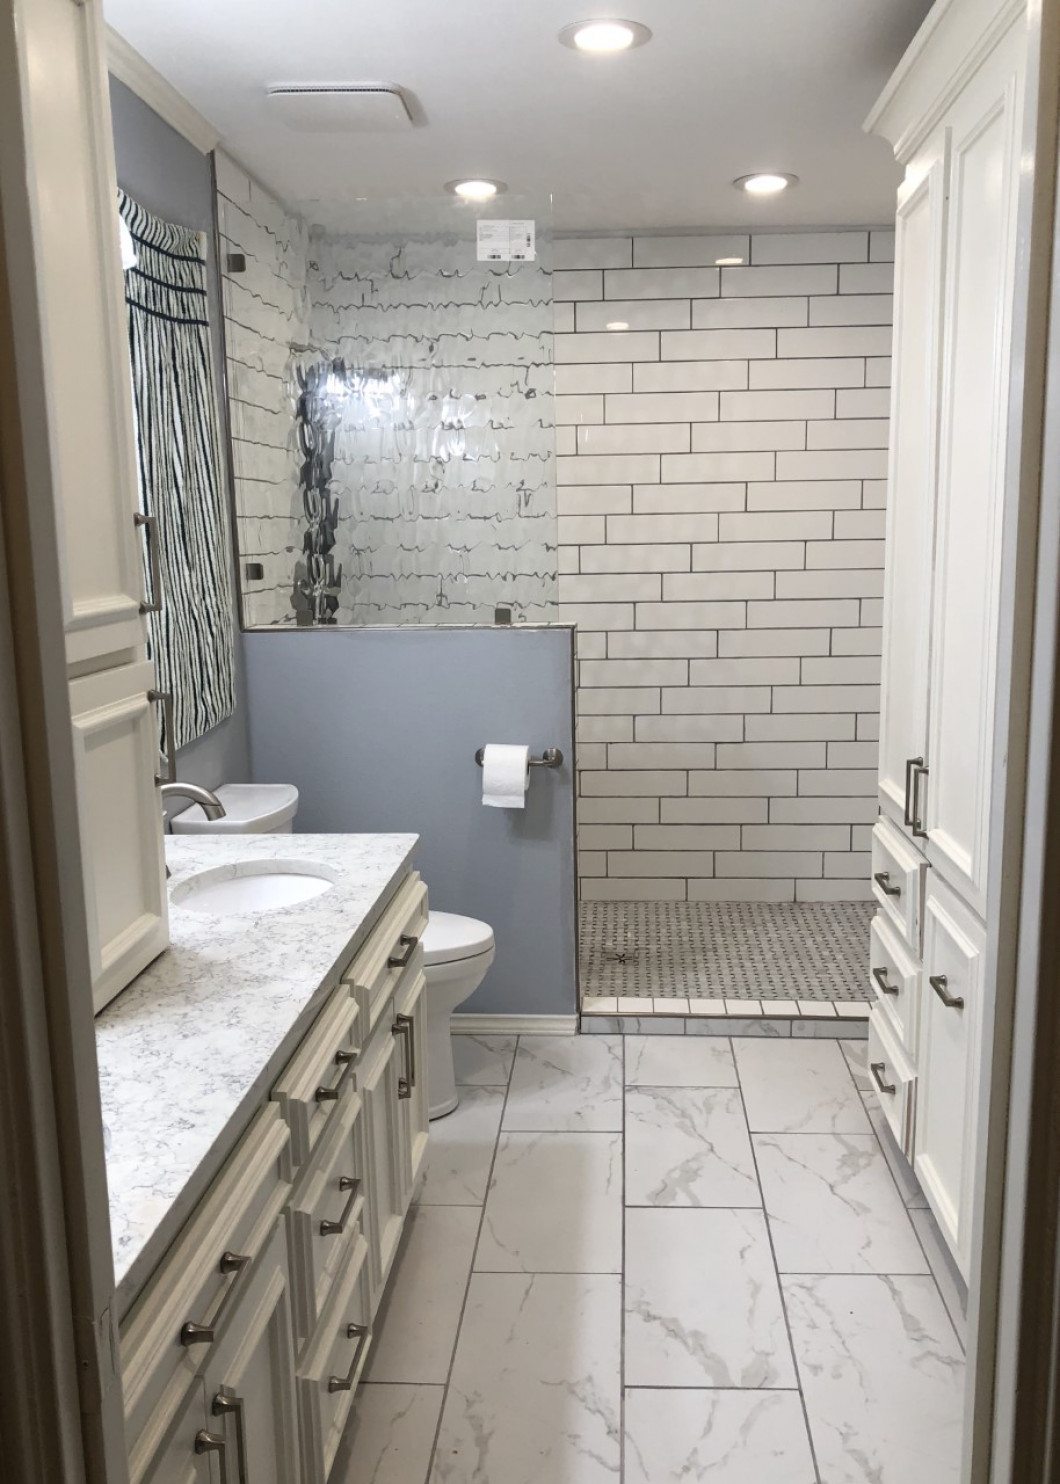 We can handle bathroom remodels of any size